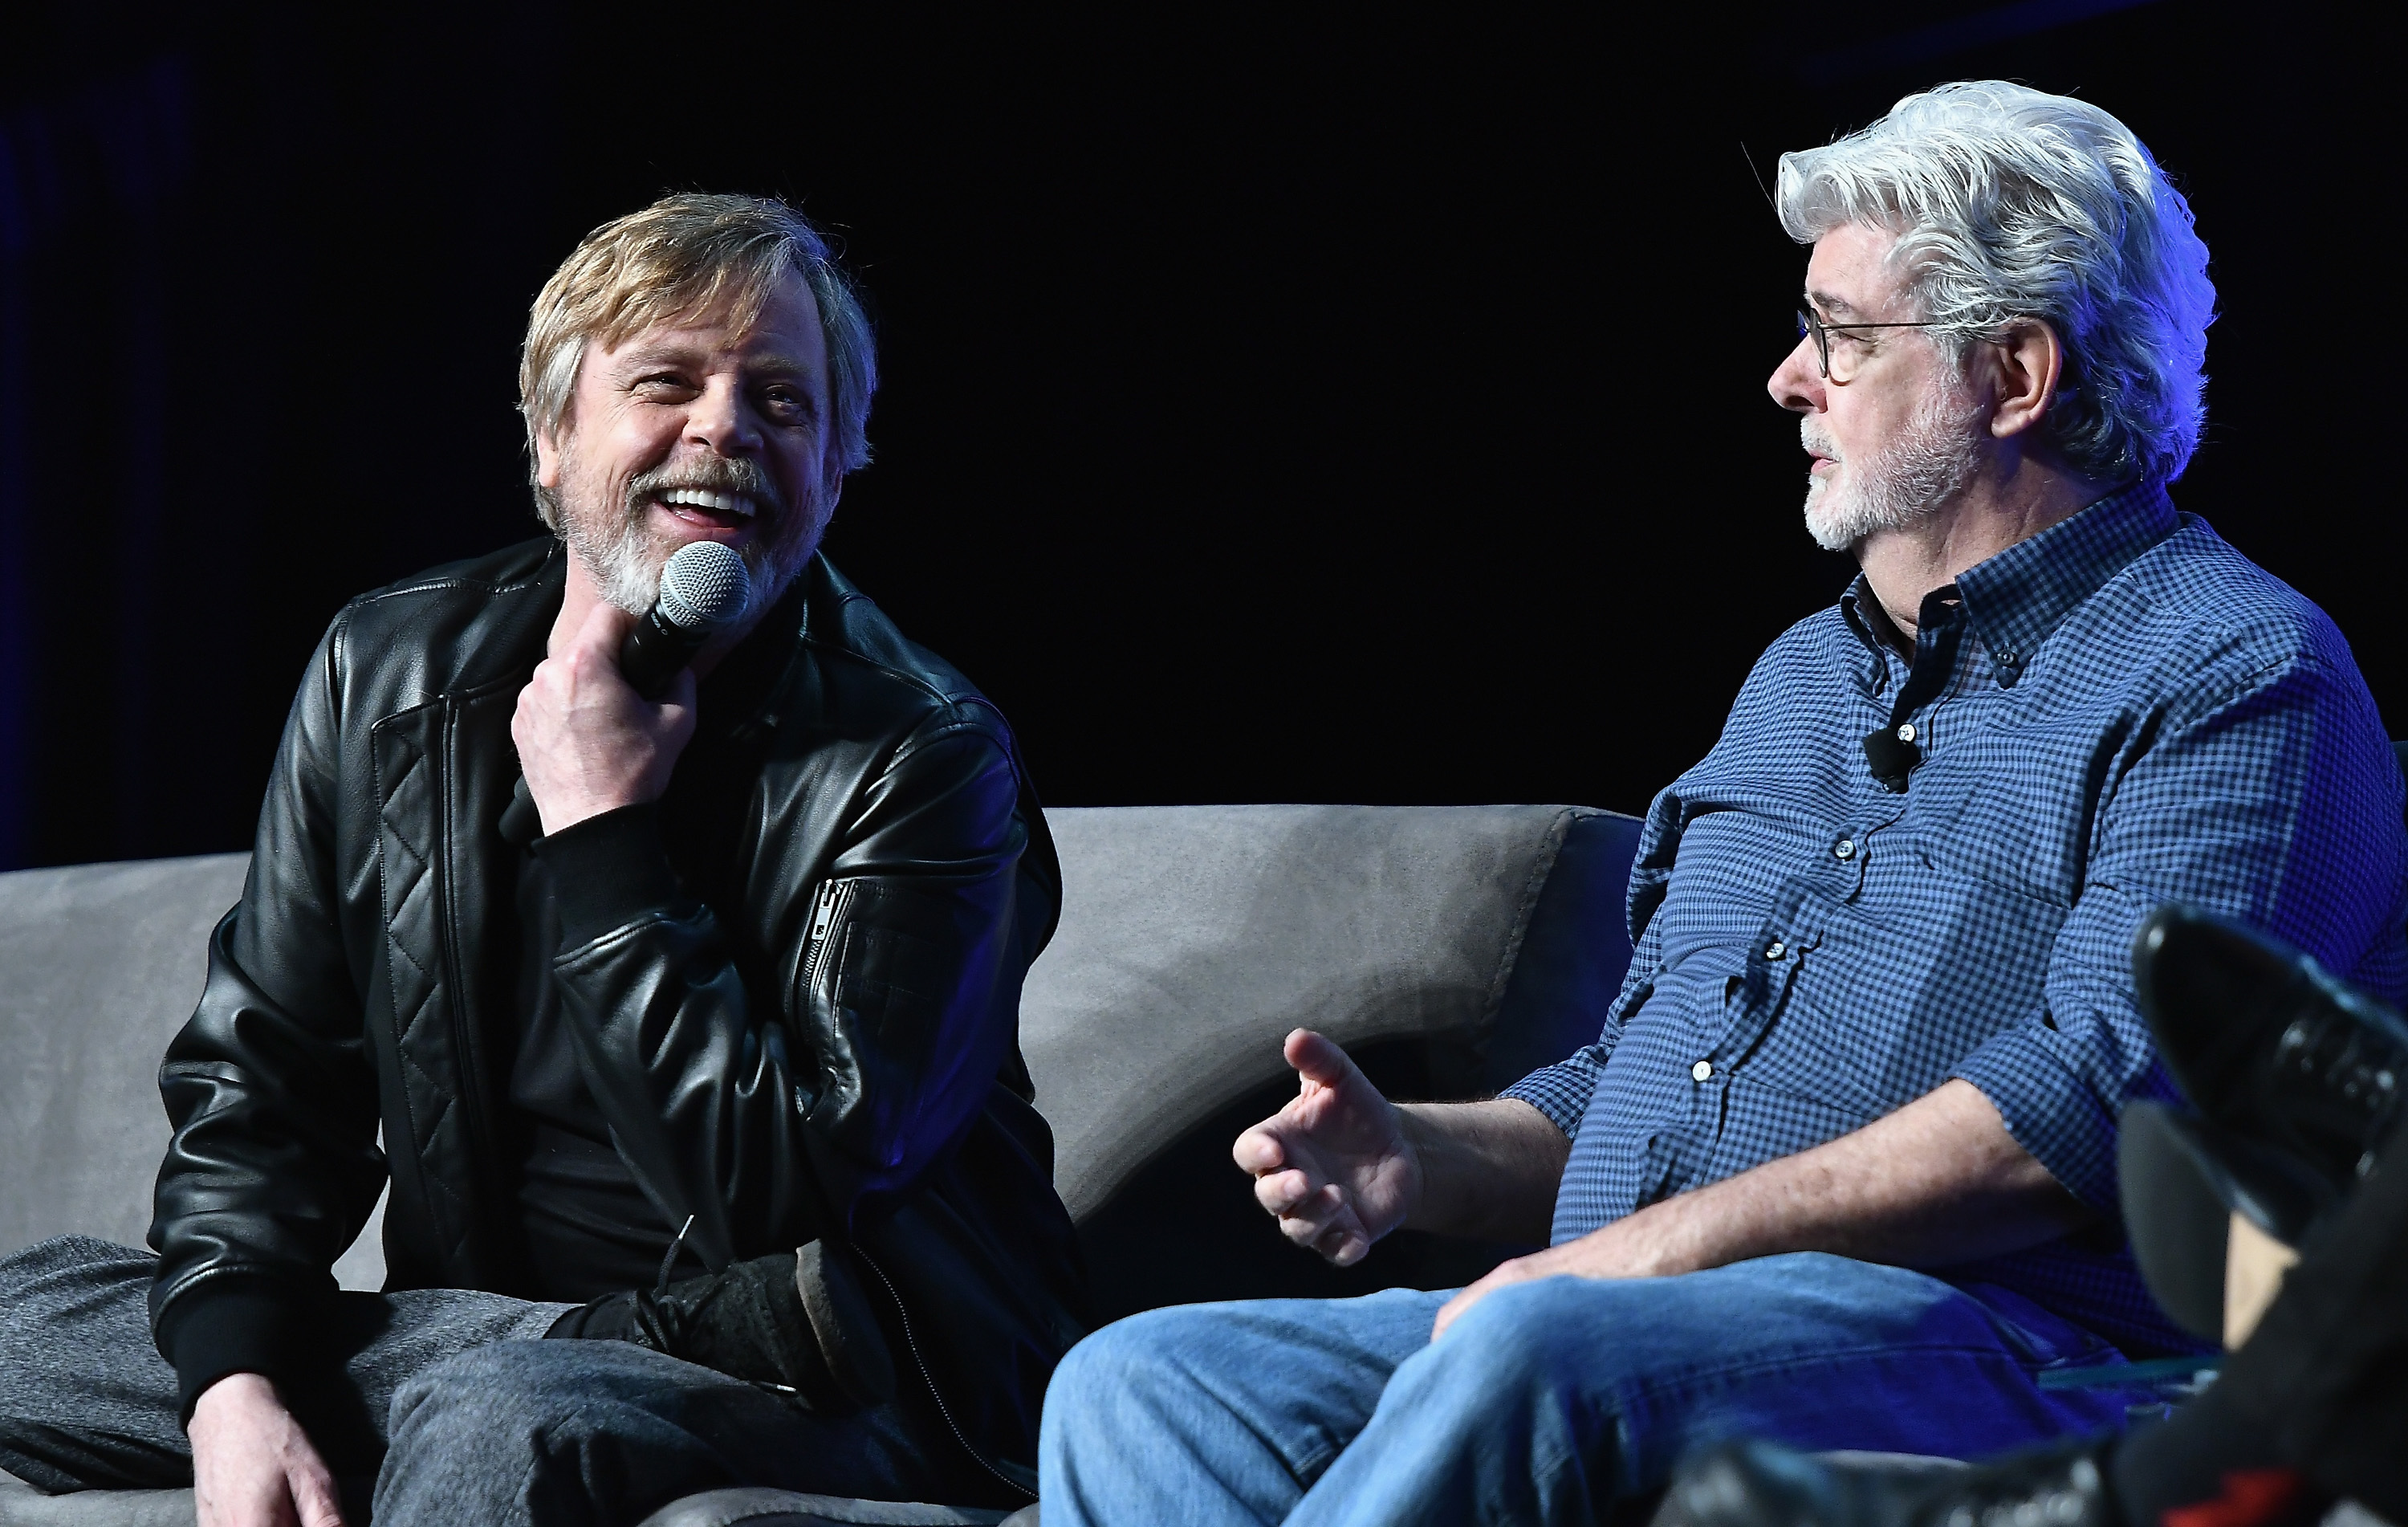 ORLANDO, FL - APRIL 13:   Mark Hamill and George Lucas attend the Star Wars Celebration Day 1 on April 13, 2017 in Orlando, Florida.  (Photo by Gustavo Caballero/Getty Images)